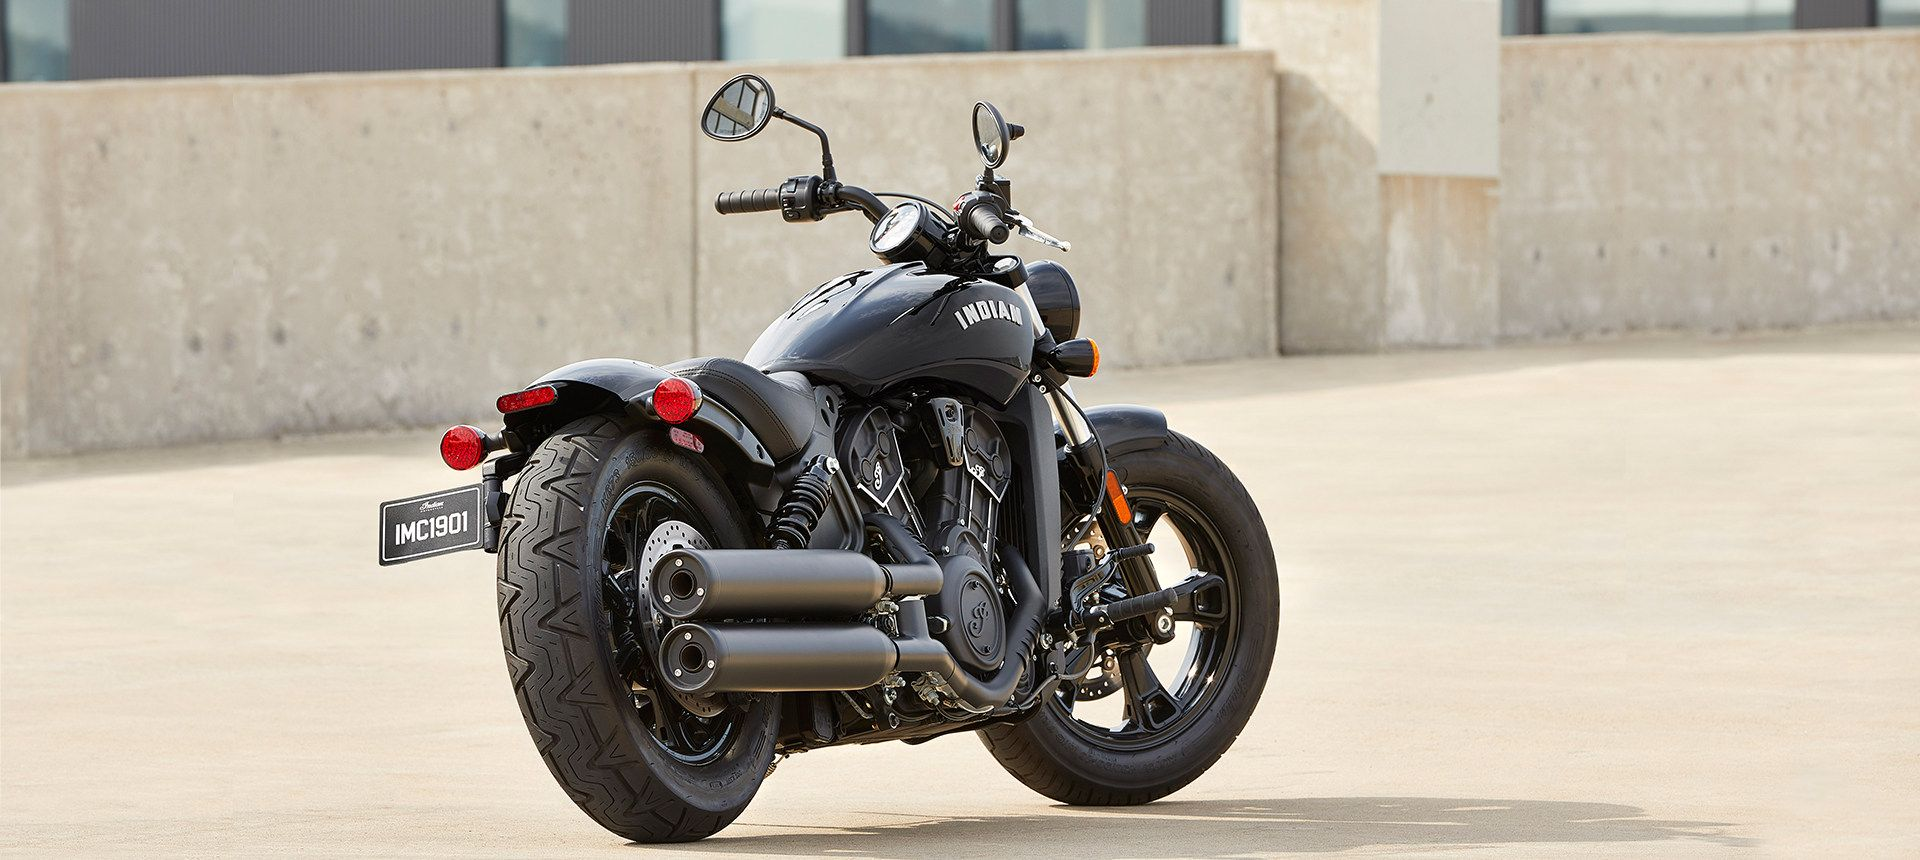 The Indian Scout Bobber Sixty Is A Caveman Motorcycle In The Best Way